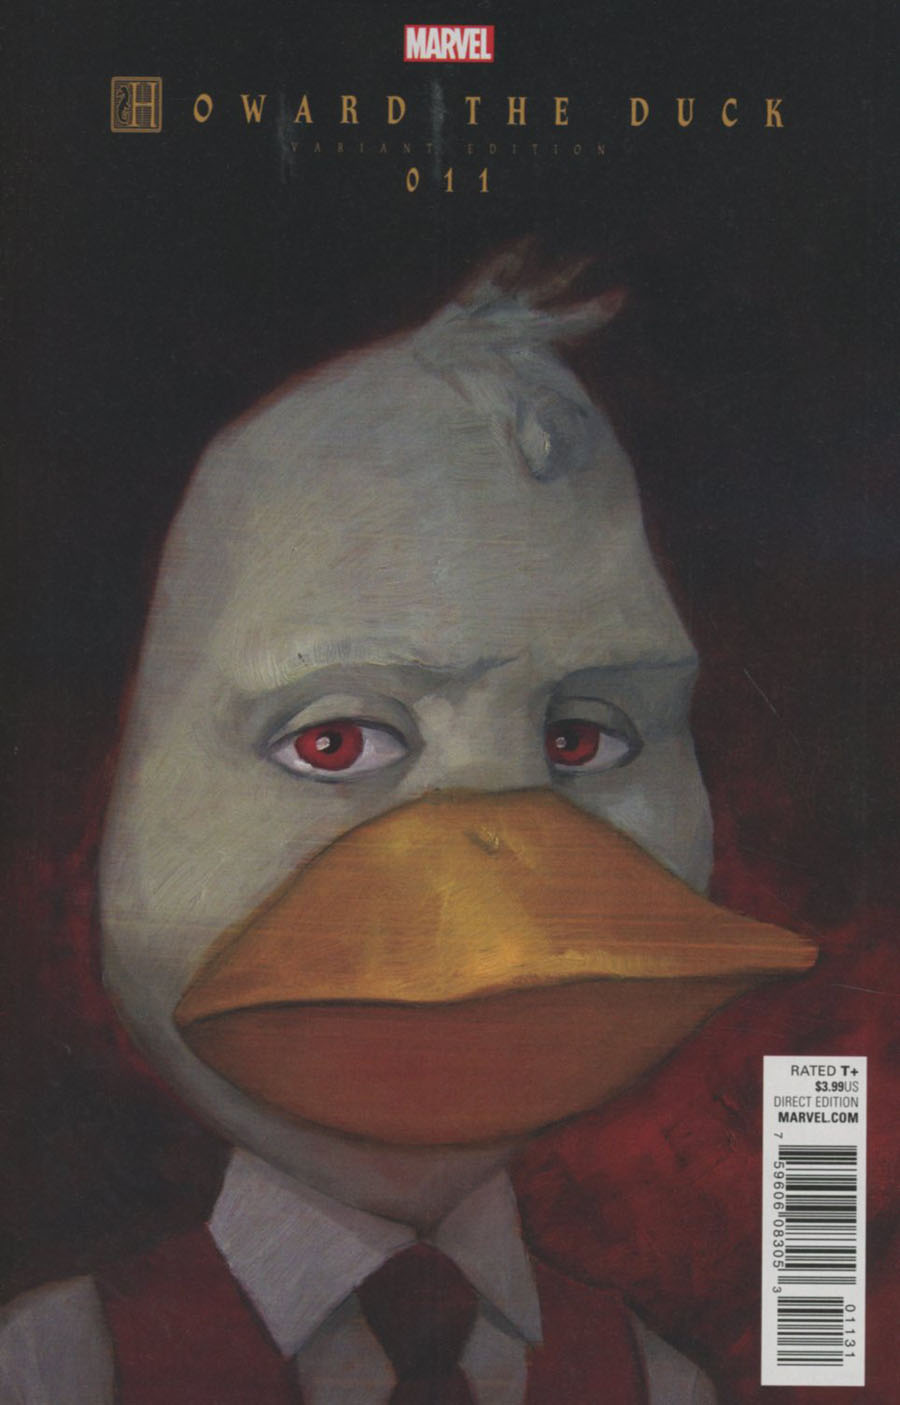 Howard The Duck Vol 5 #11 Cover B Variant Chip Zdarsky Last Issue Cover